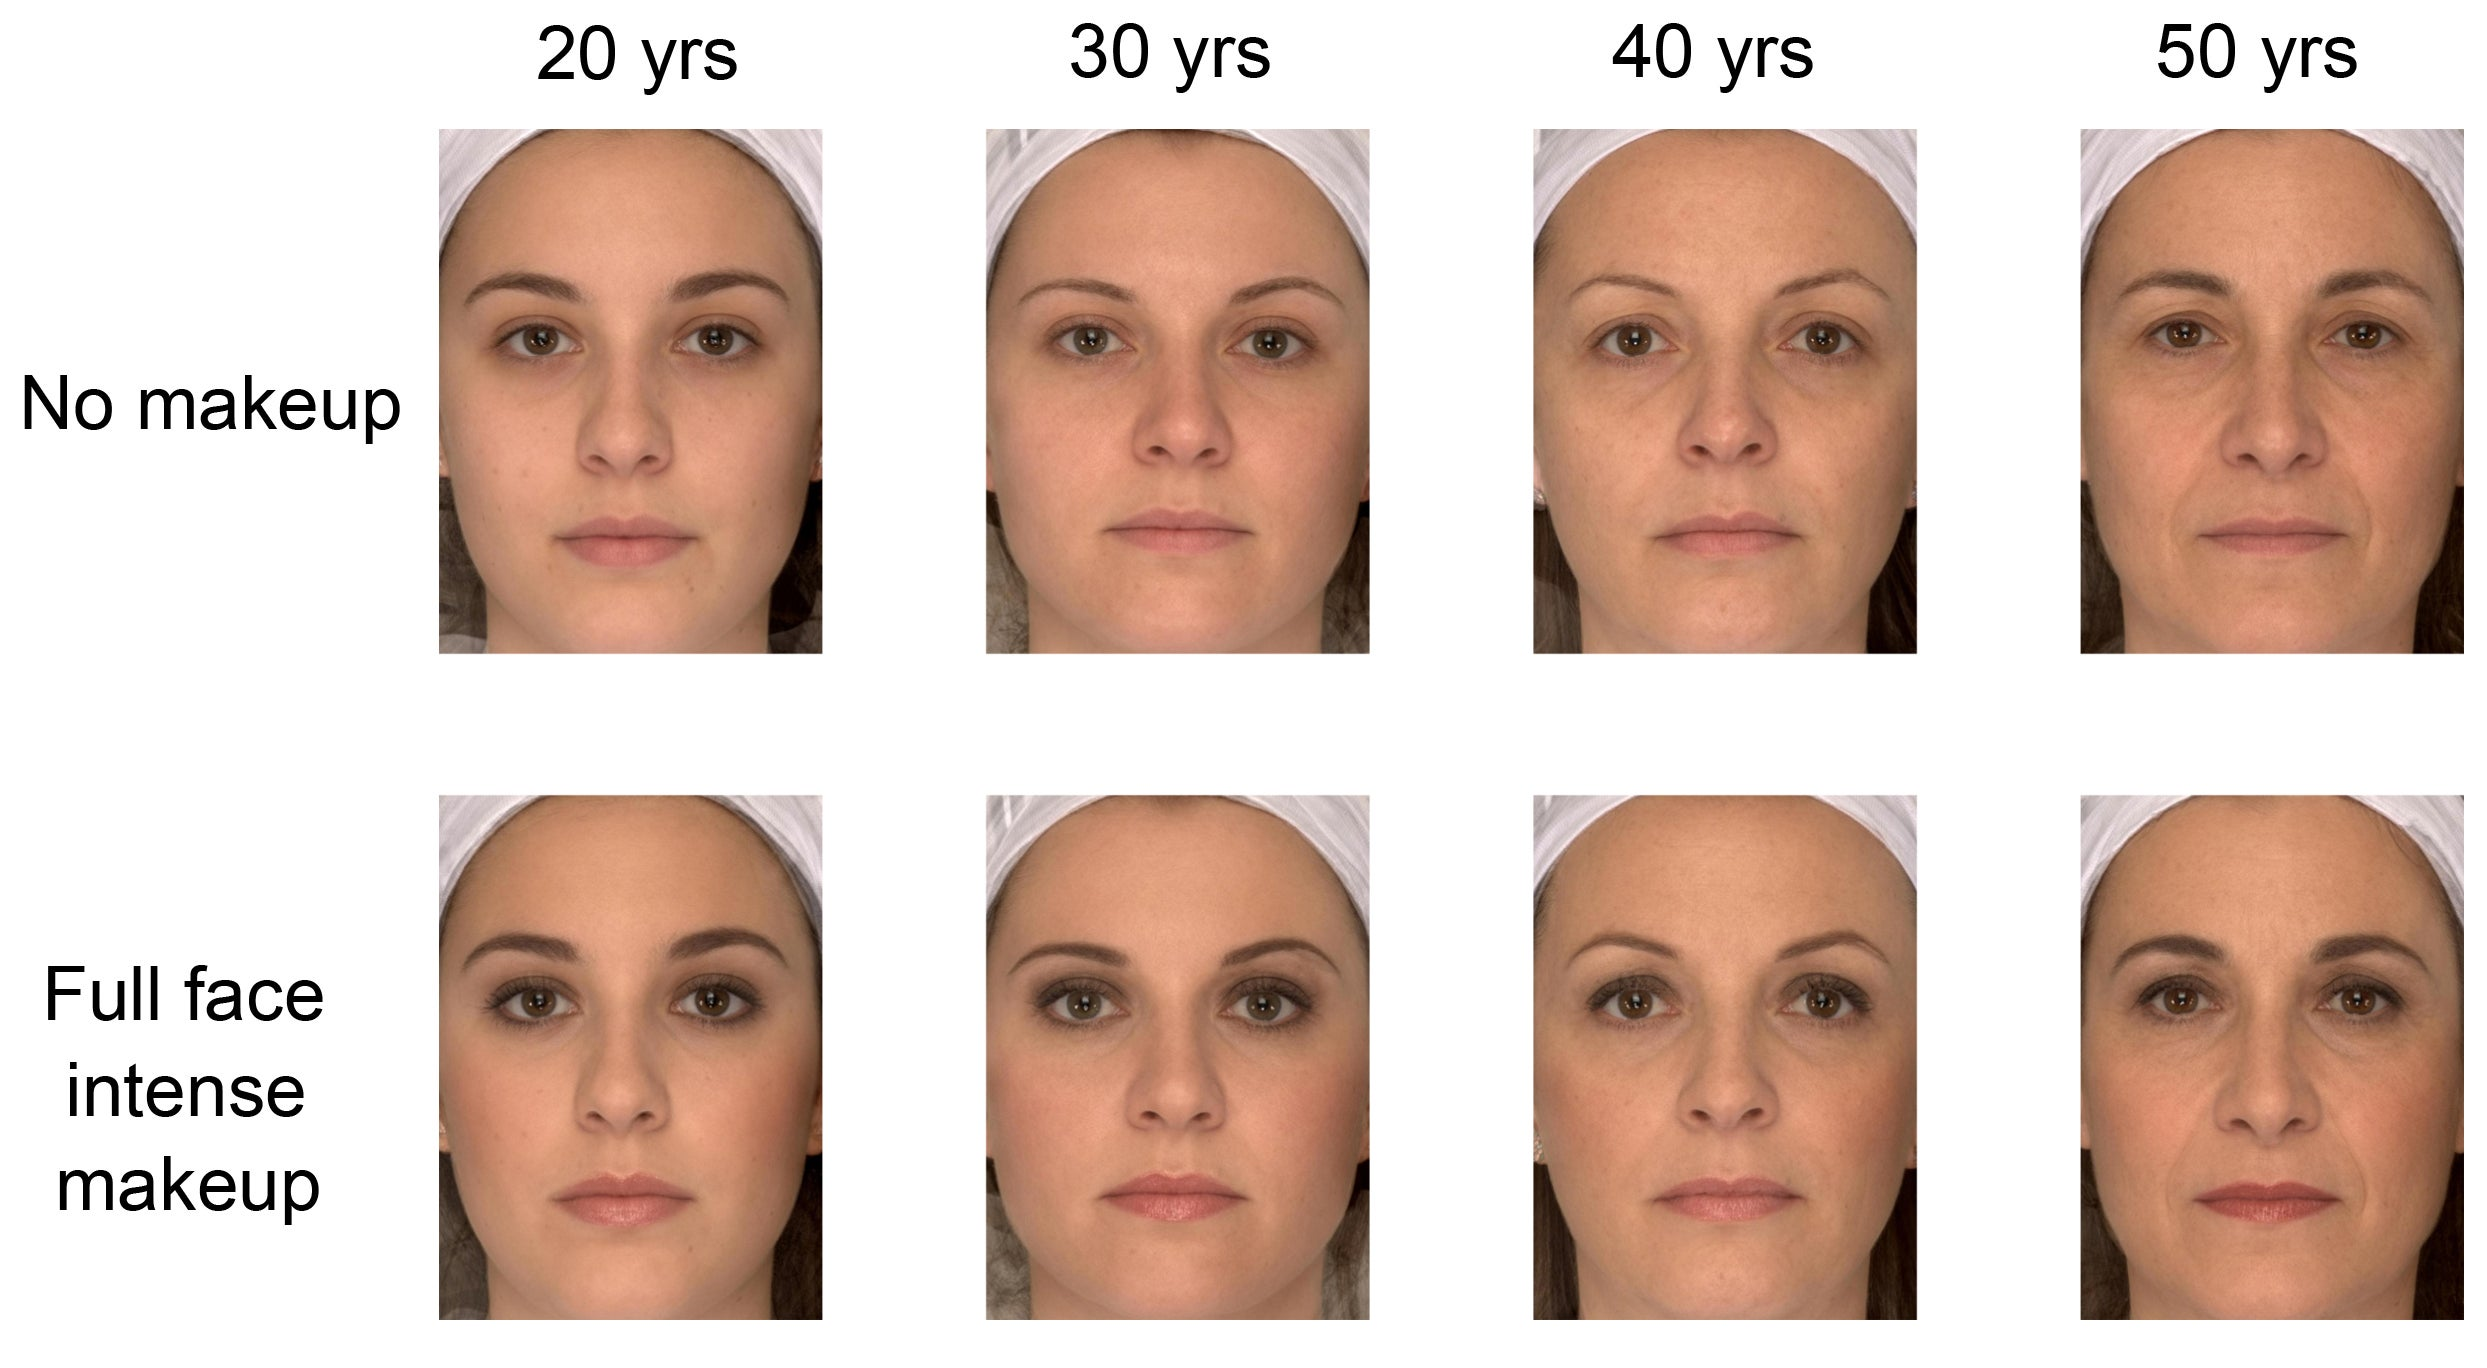 Makeup Makes Older Faces Look Younger, and Younger Faces Look